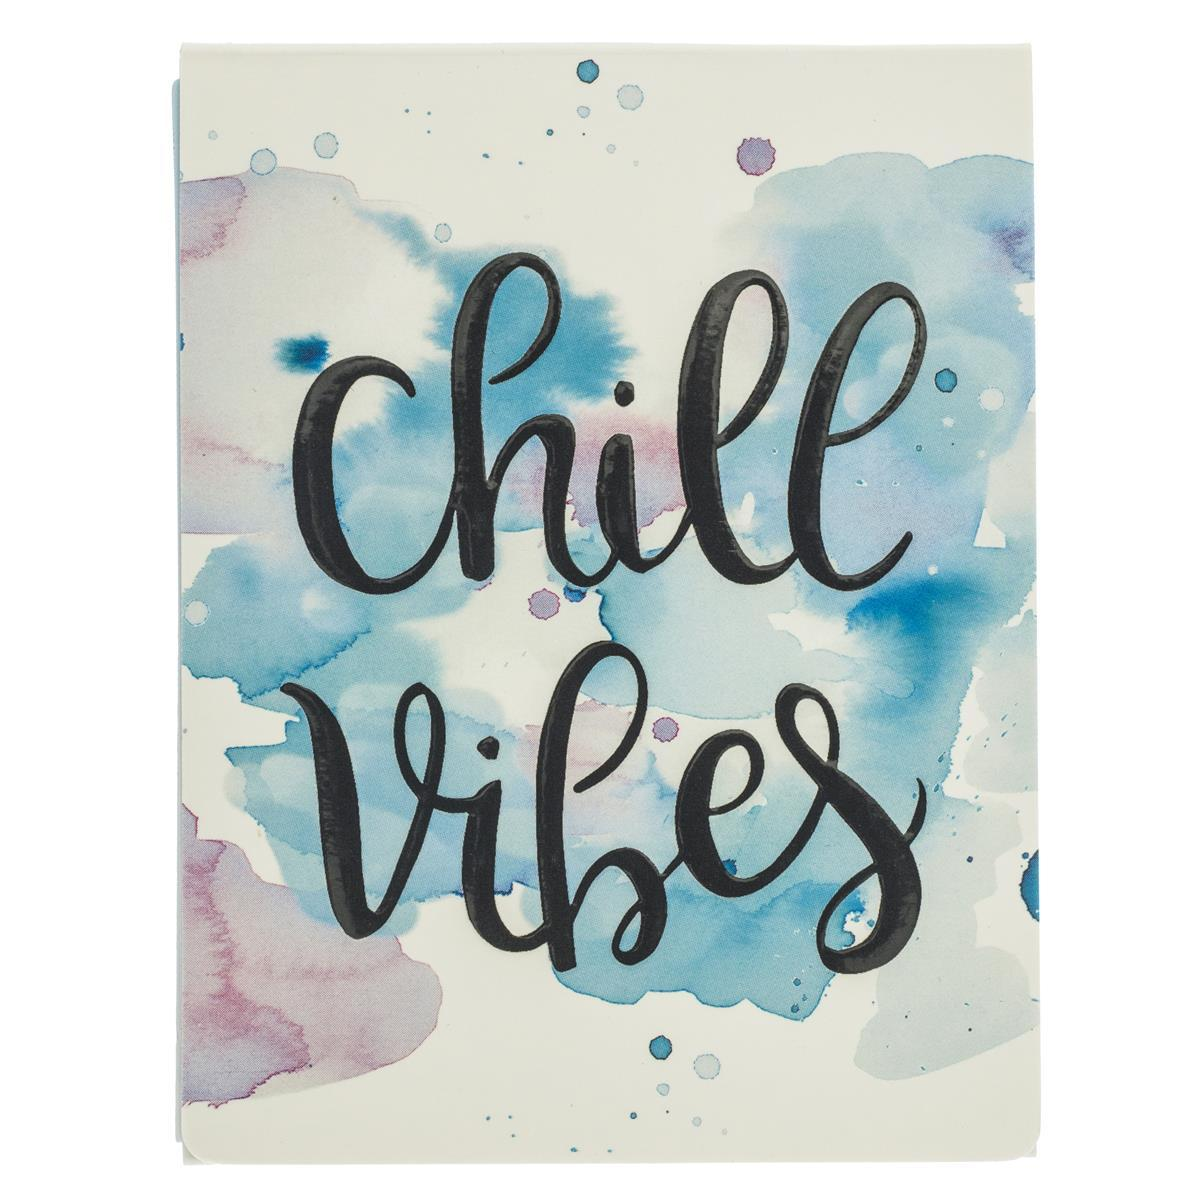 Chill Vibes Pocket Note